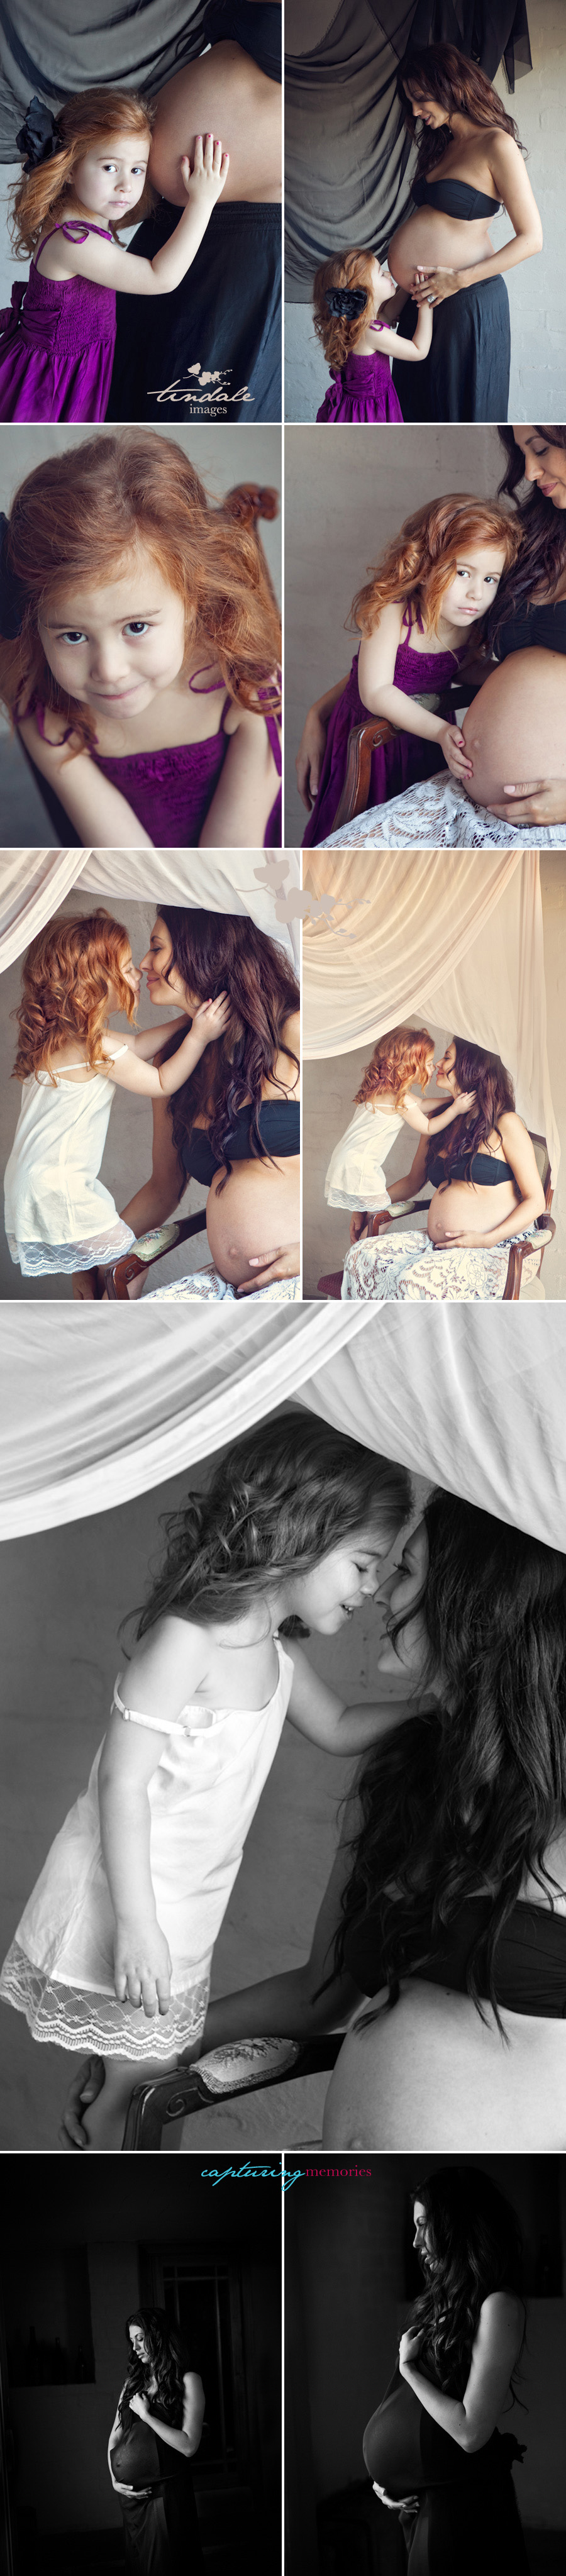 simply stunning - sutherland shire maternity photographer